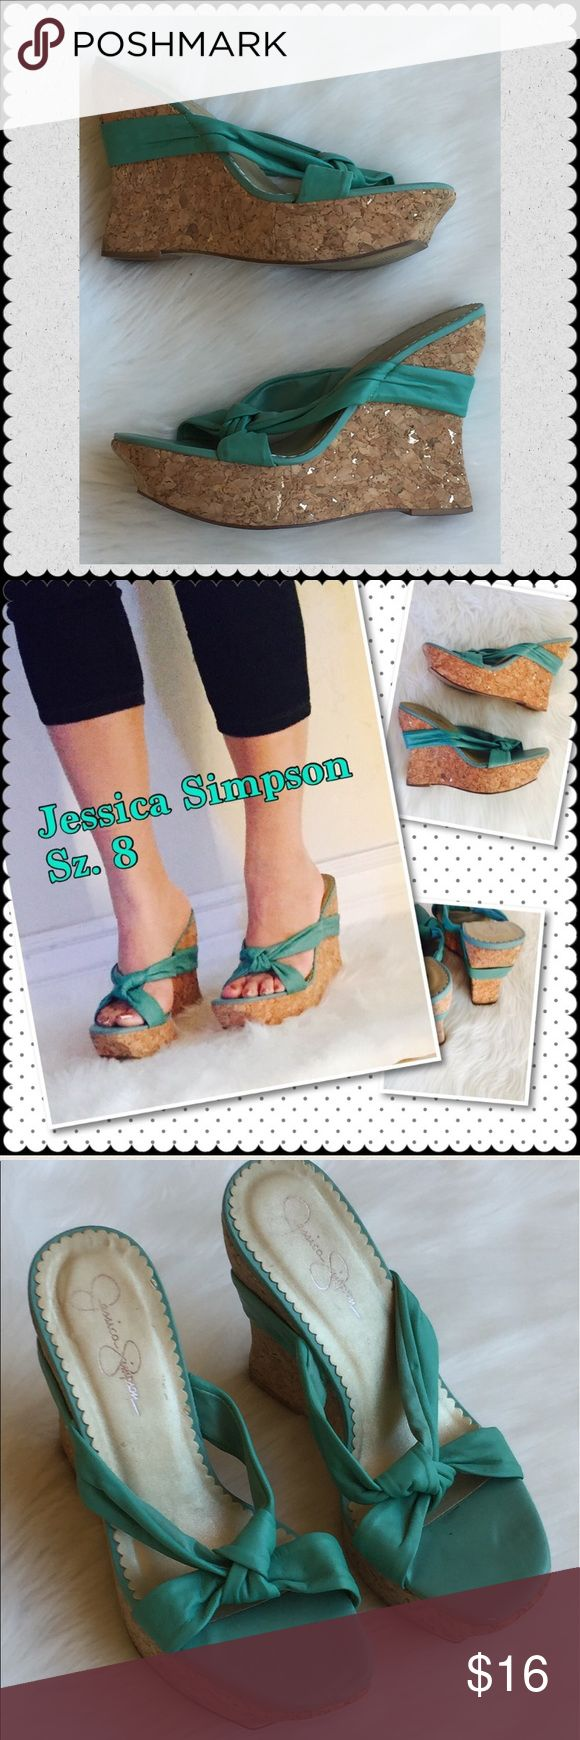 Jessica Simpson cork wedge platforms 8 Jessica Simpson  Wedge platform shoes sandals, cork is a mix of brown with bits of gold, very pretty! Sz 8  Teal top cork wedge Gently used condition  No trades Jessica Simpson Shoes Platforms